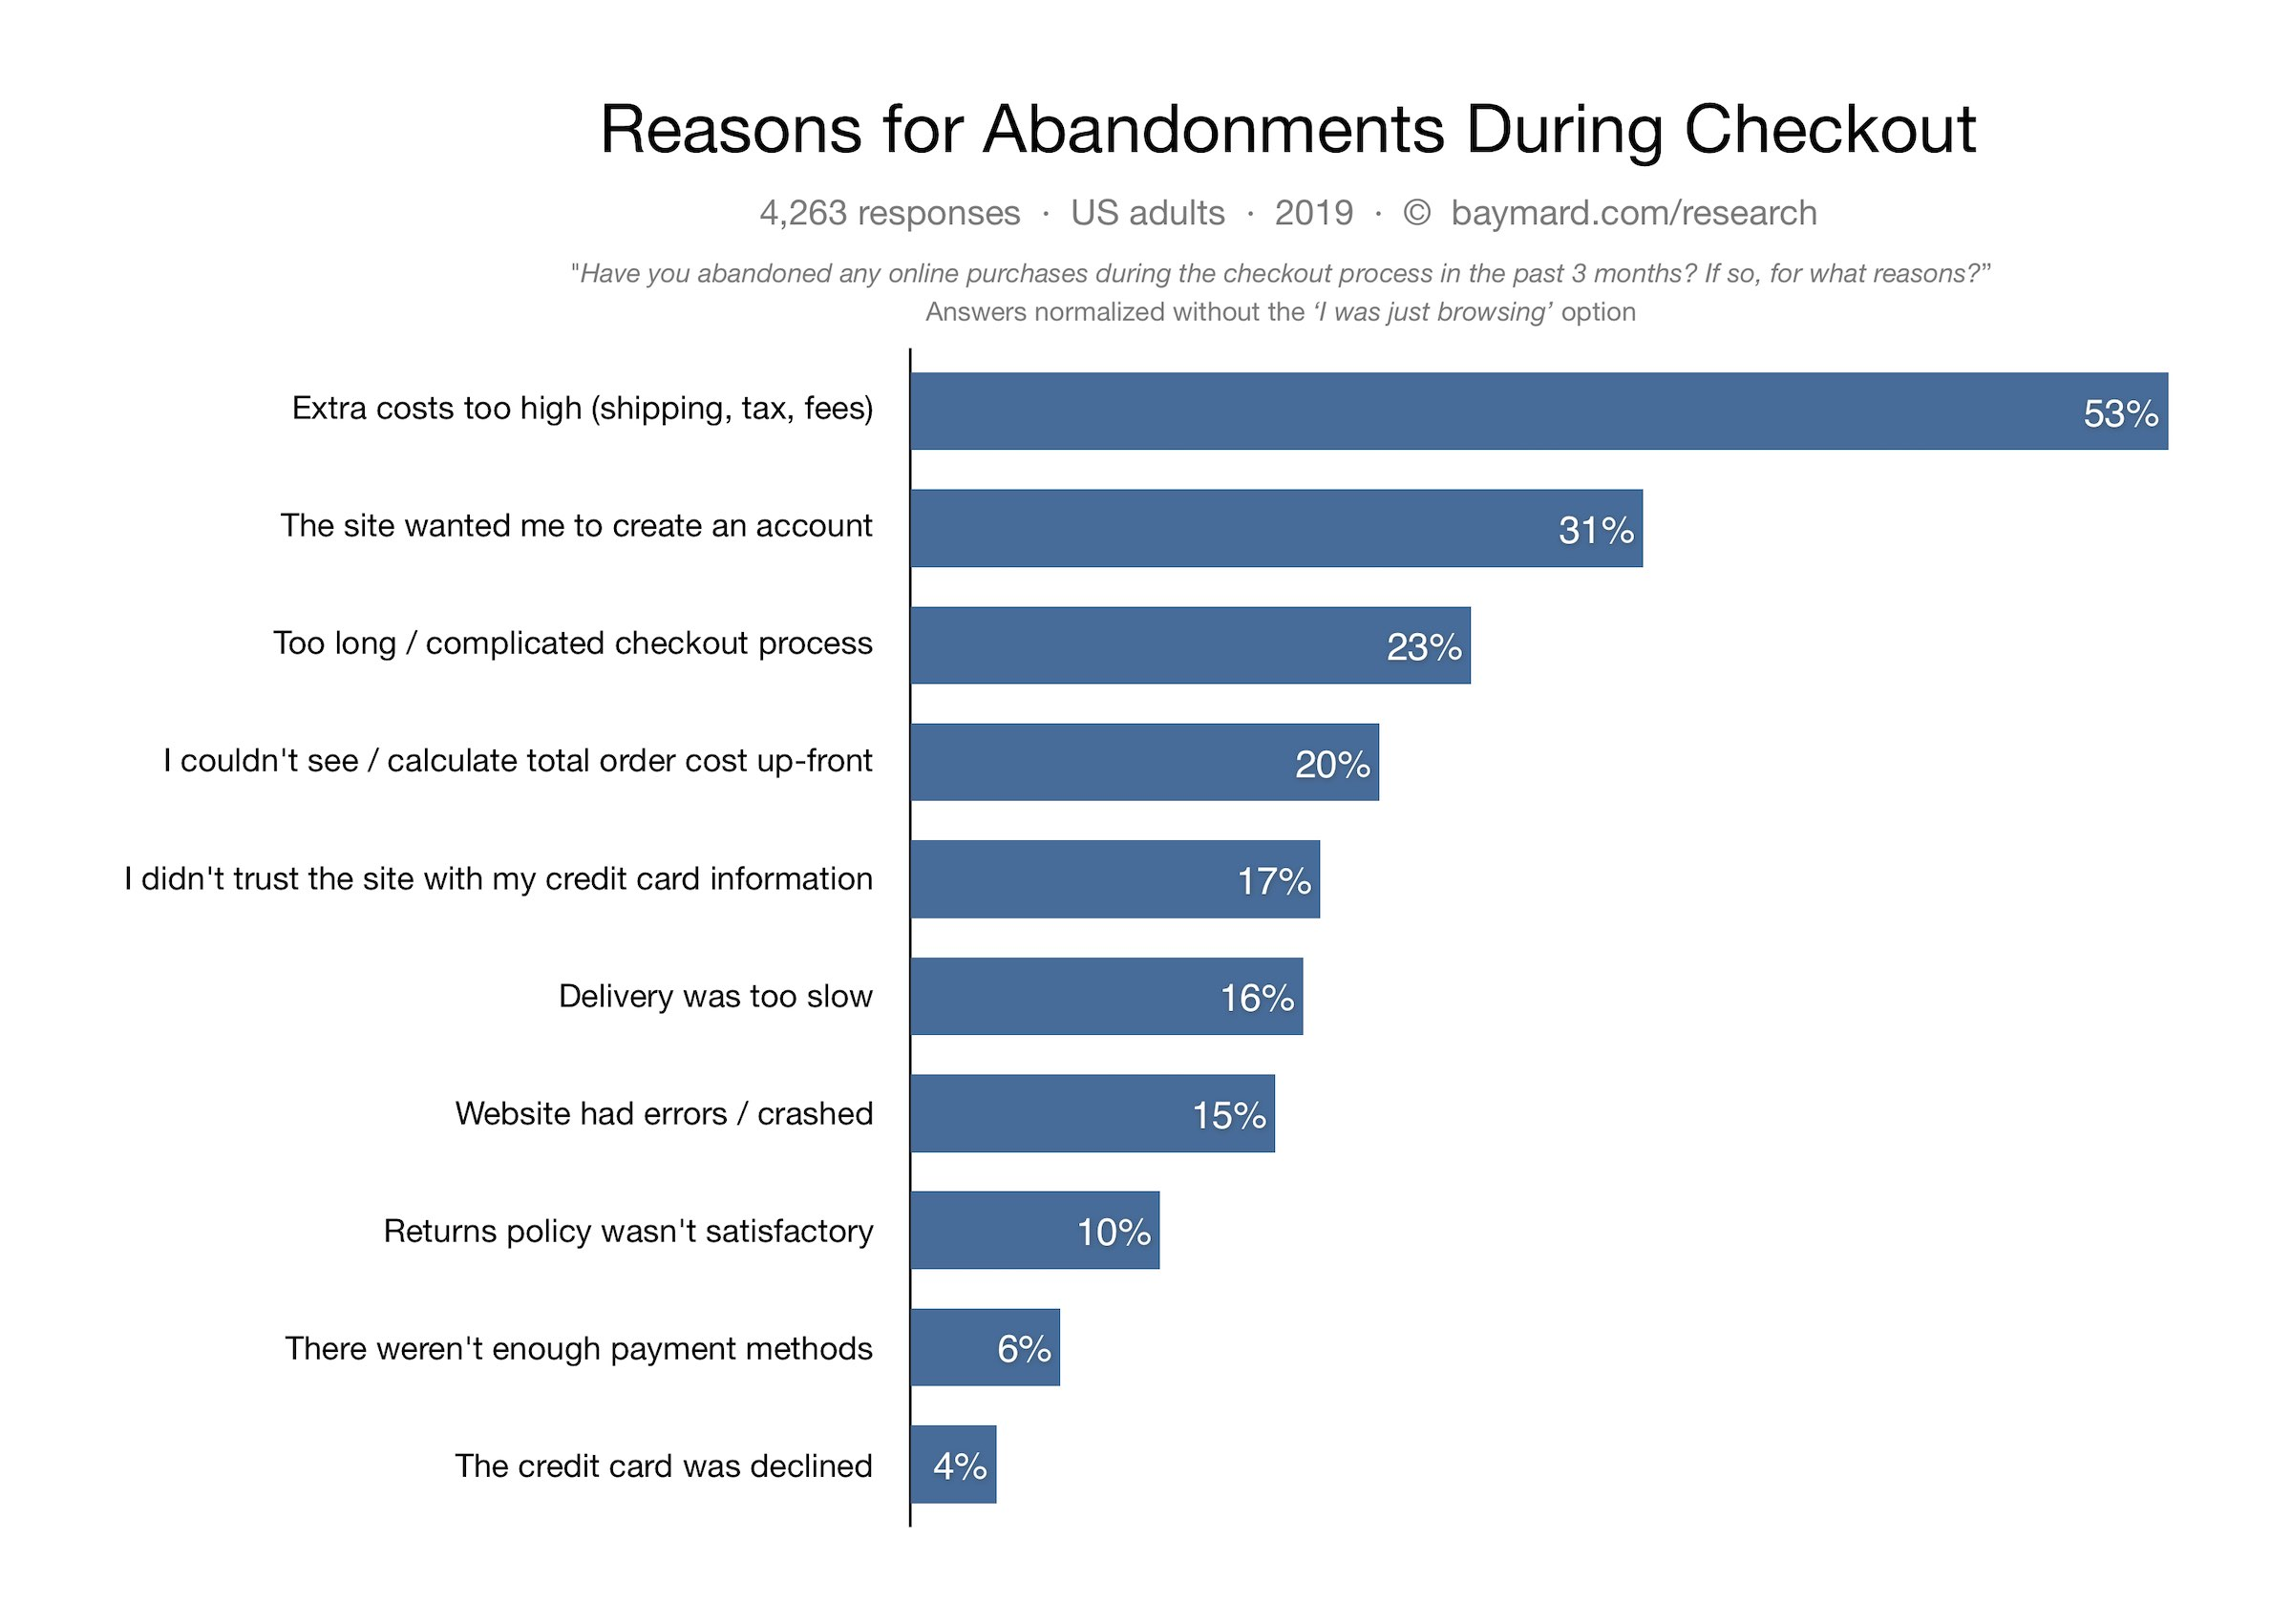 Baymard Institute offers reasons for abandonments during checkout.